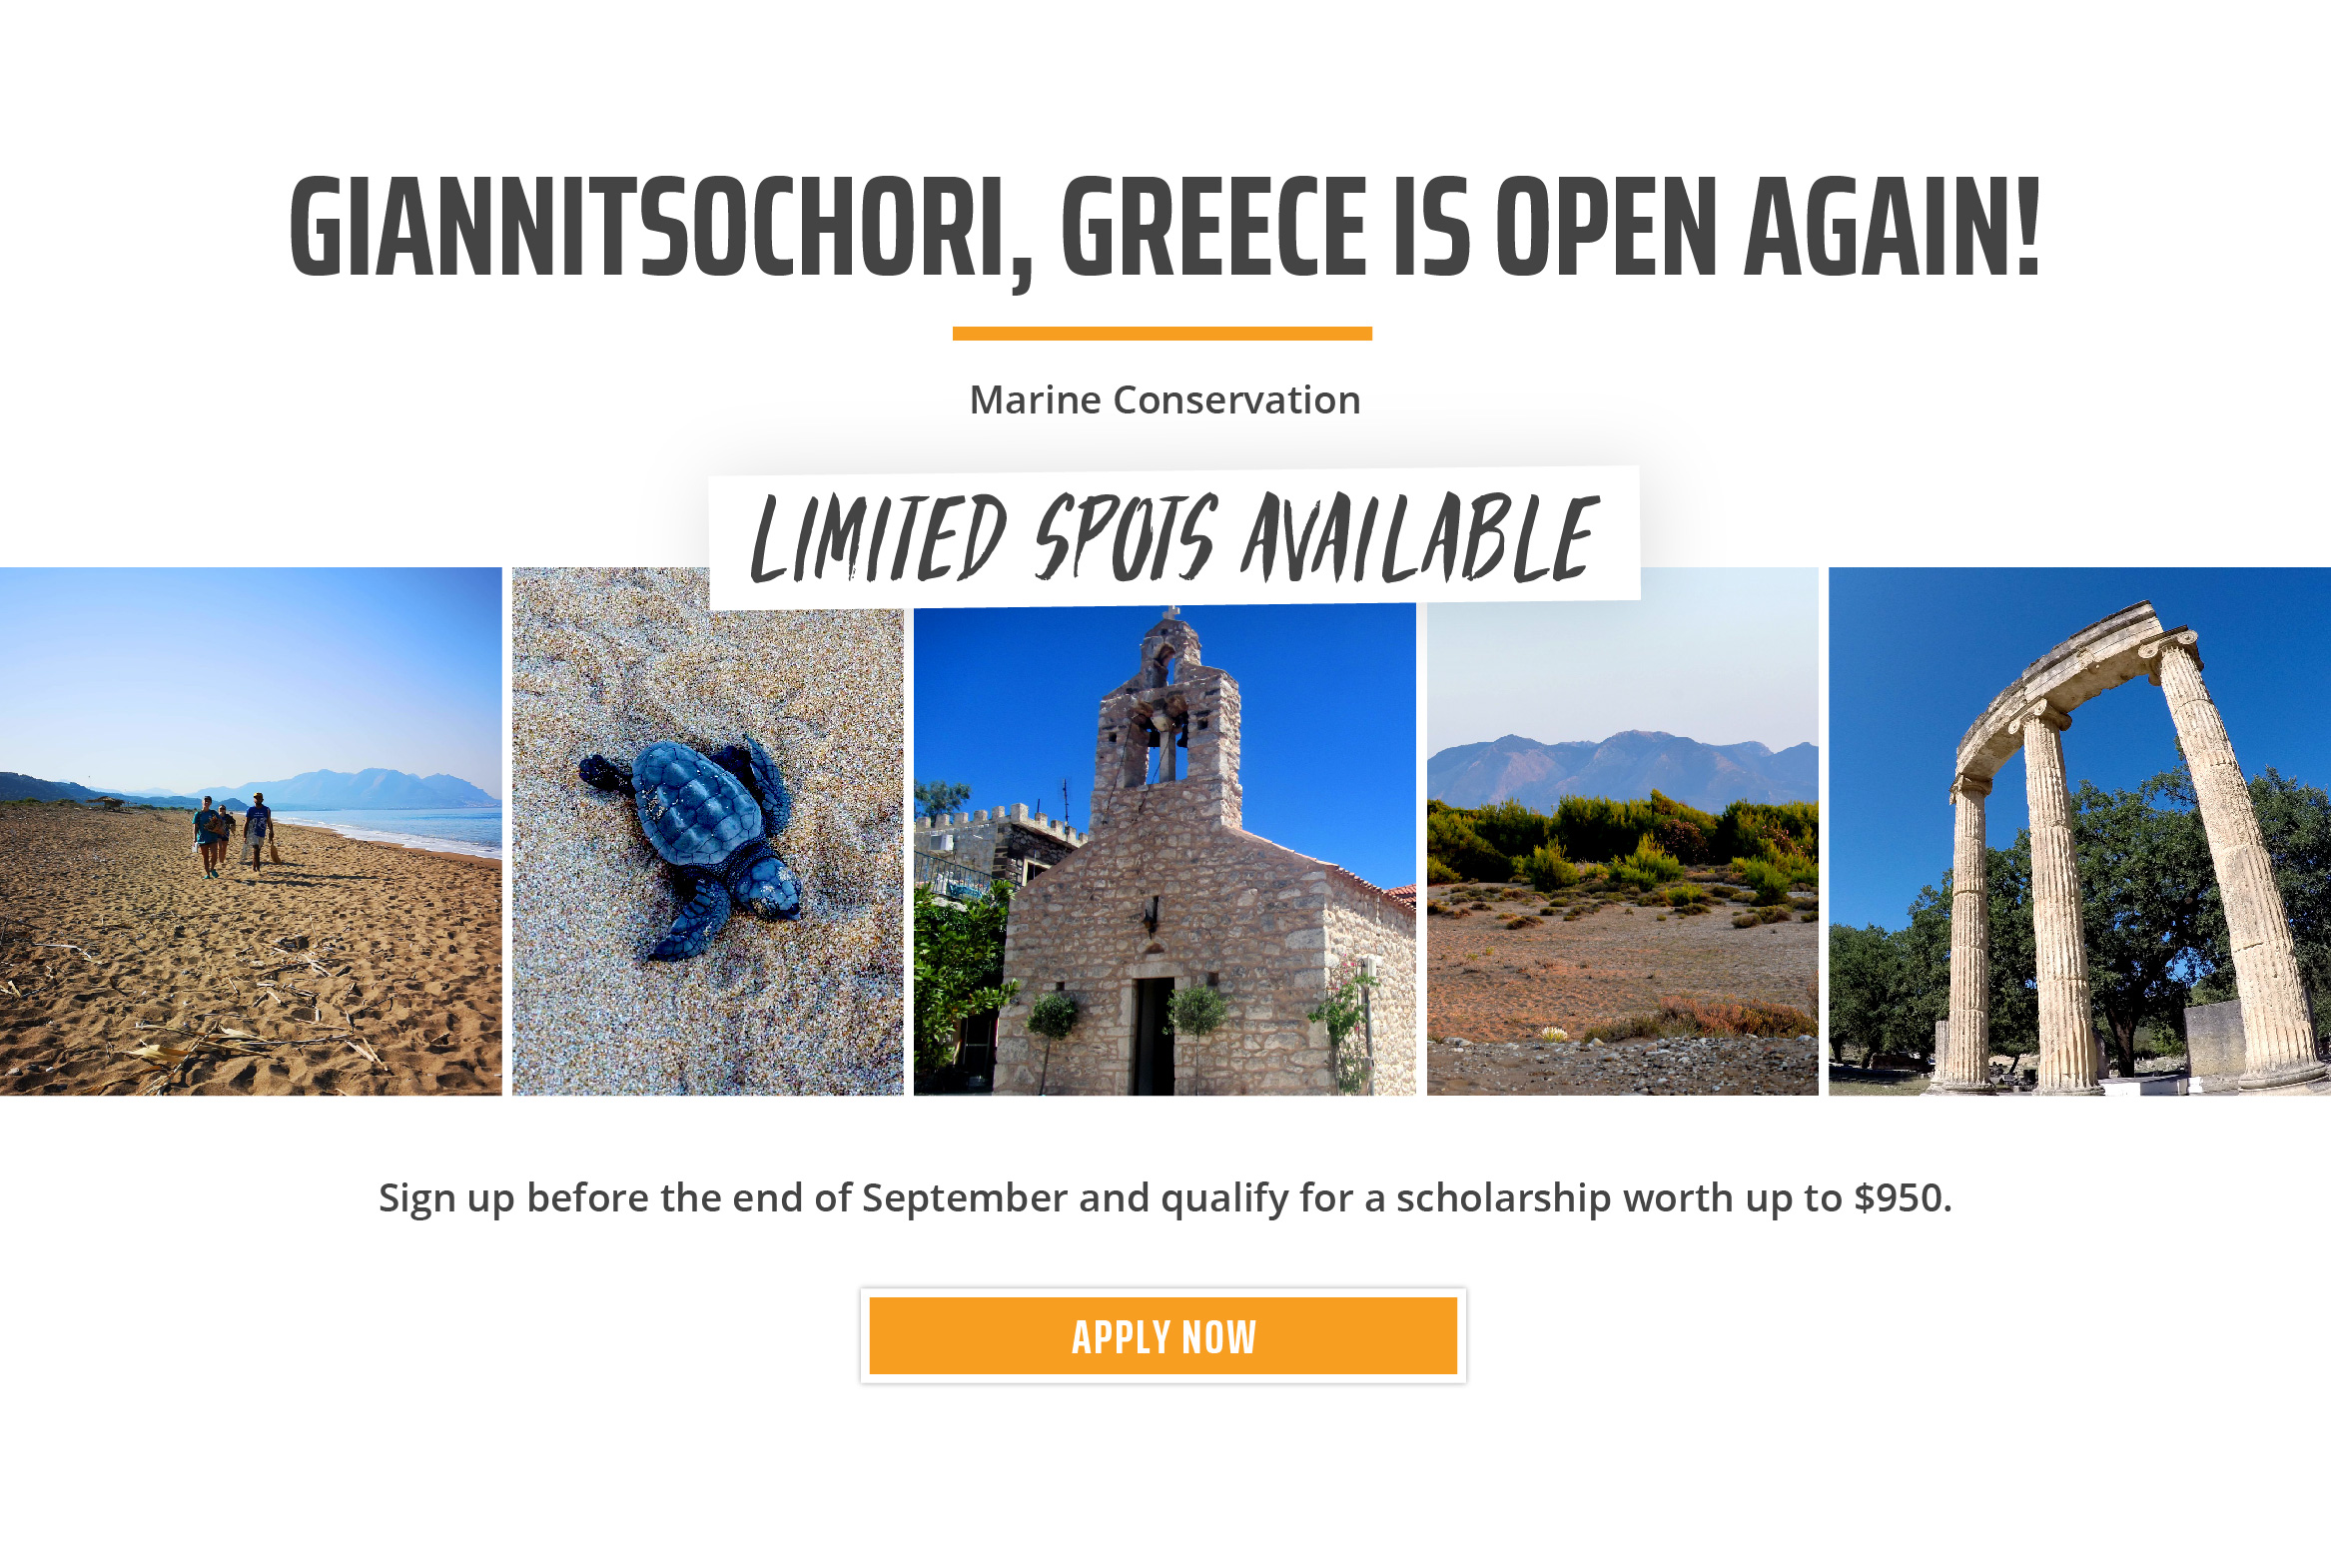 AUS/CAN Greece Reopening